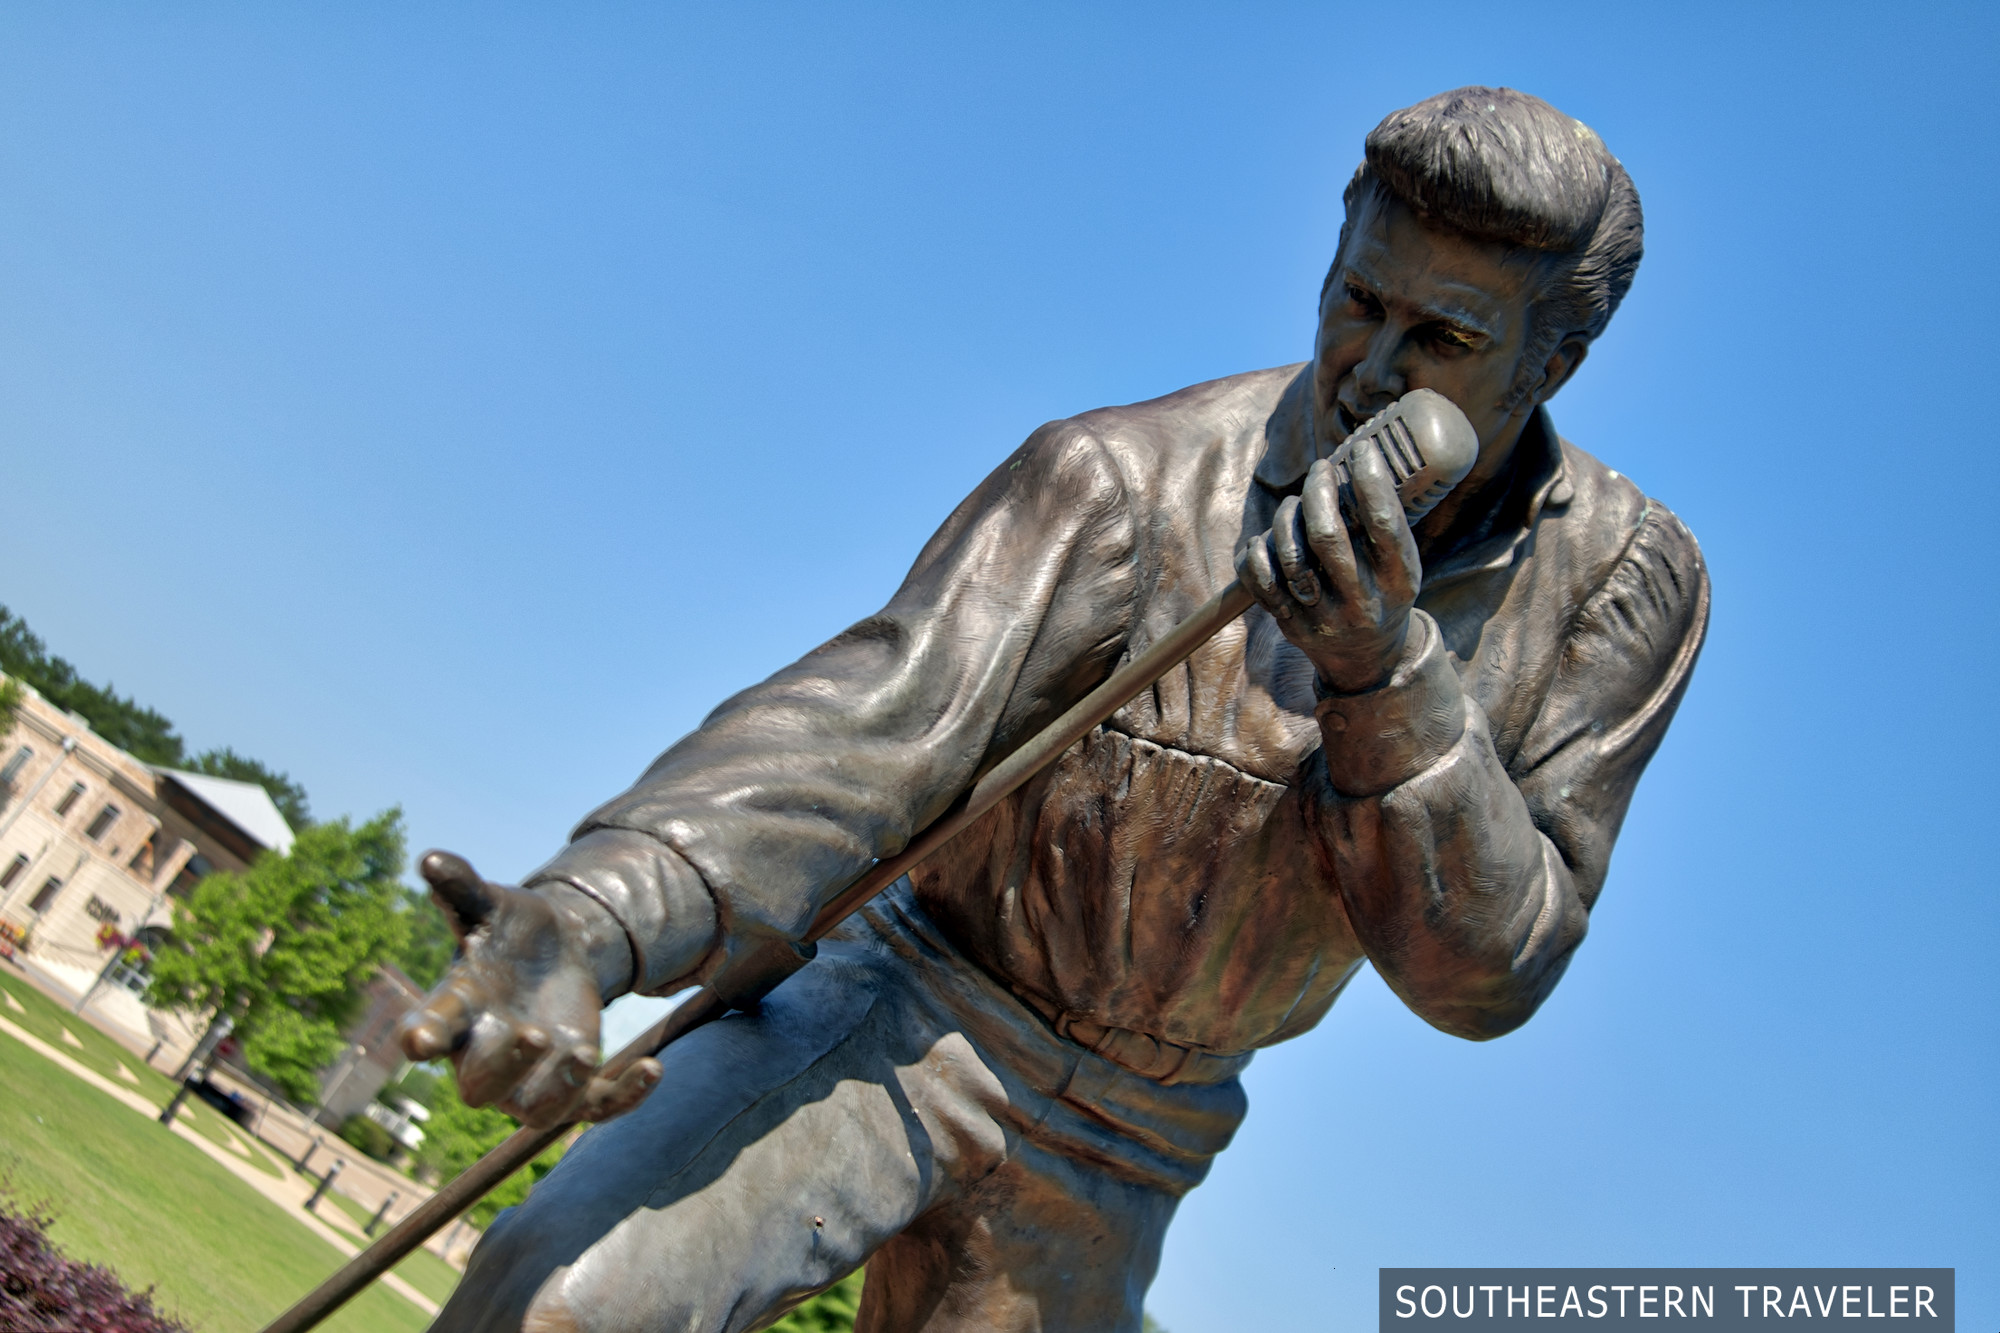 Larger than life statue of Elvis Presley singing in a concert in a park in Tupelo, Mississippi